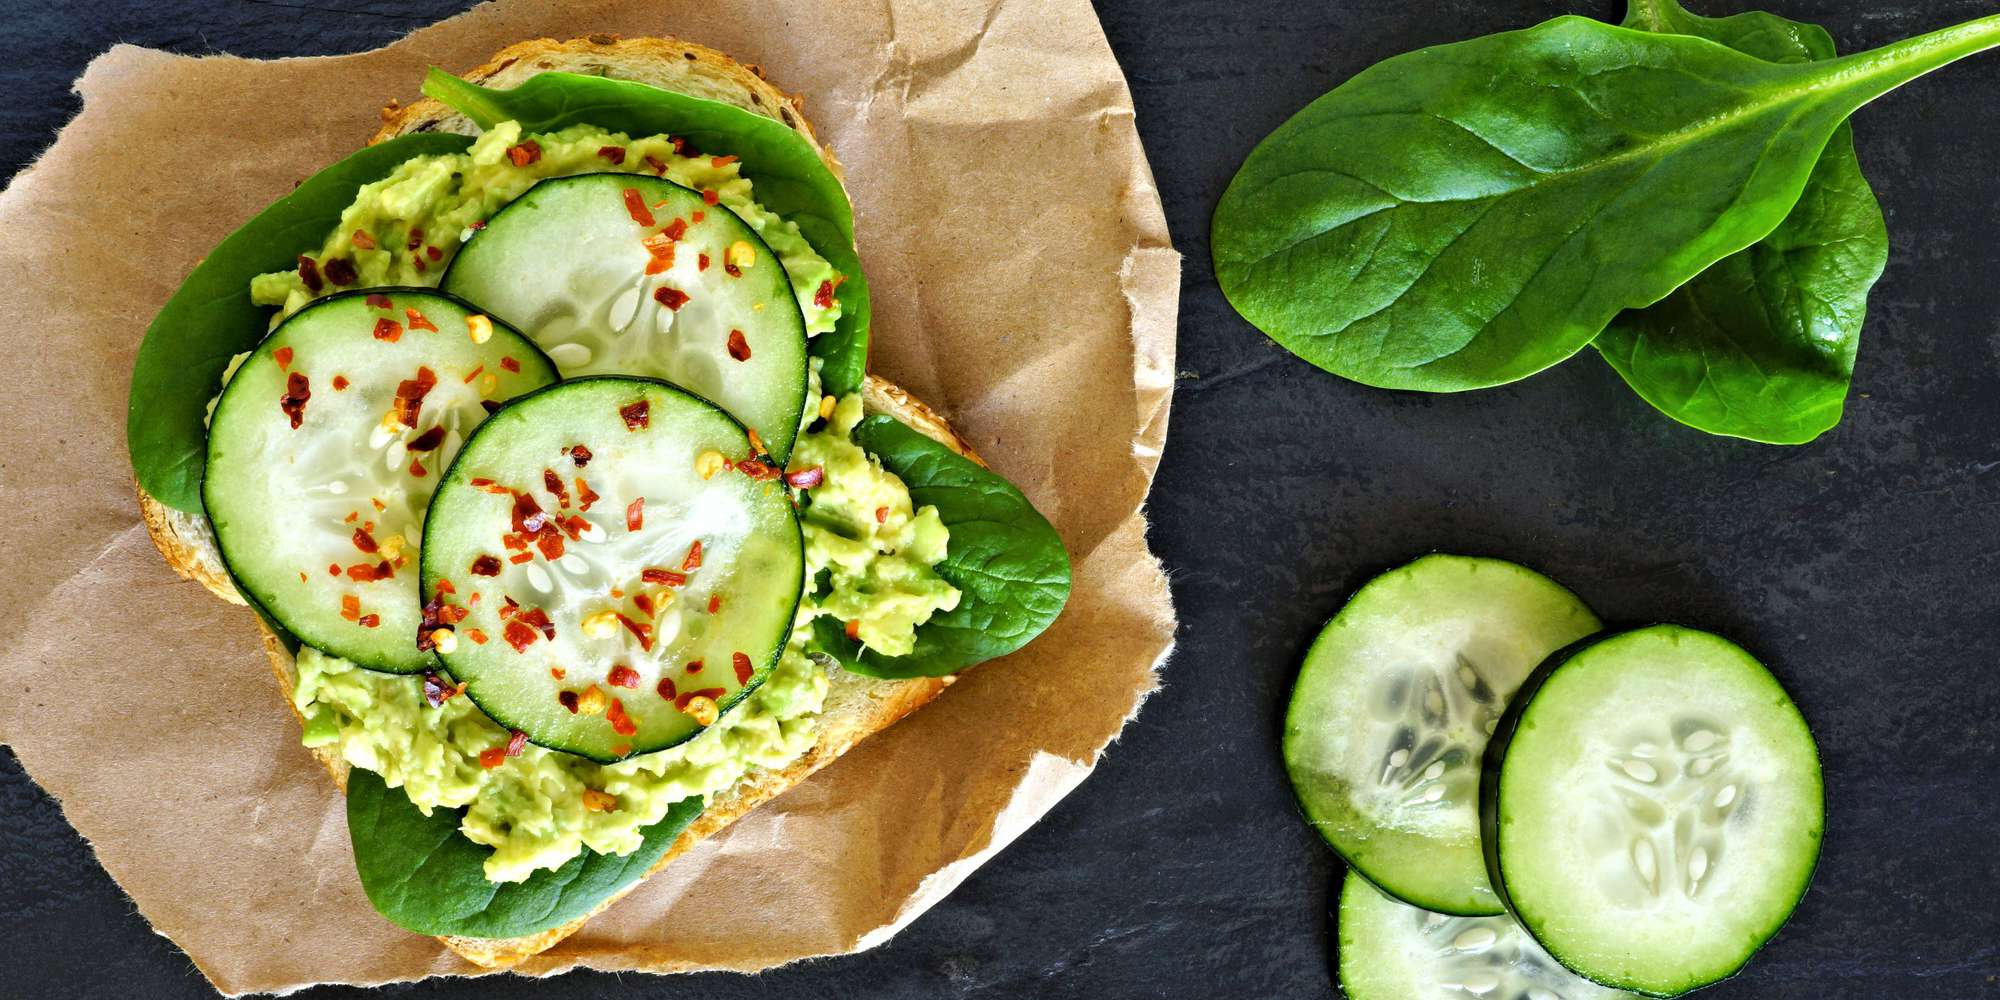 Gluten-Free Avocado Toast with Spinach & Cucumber